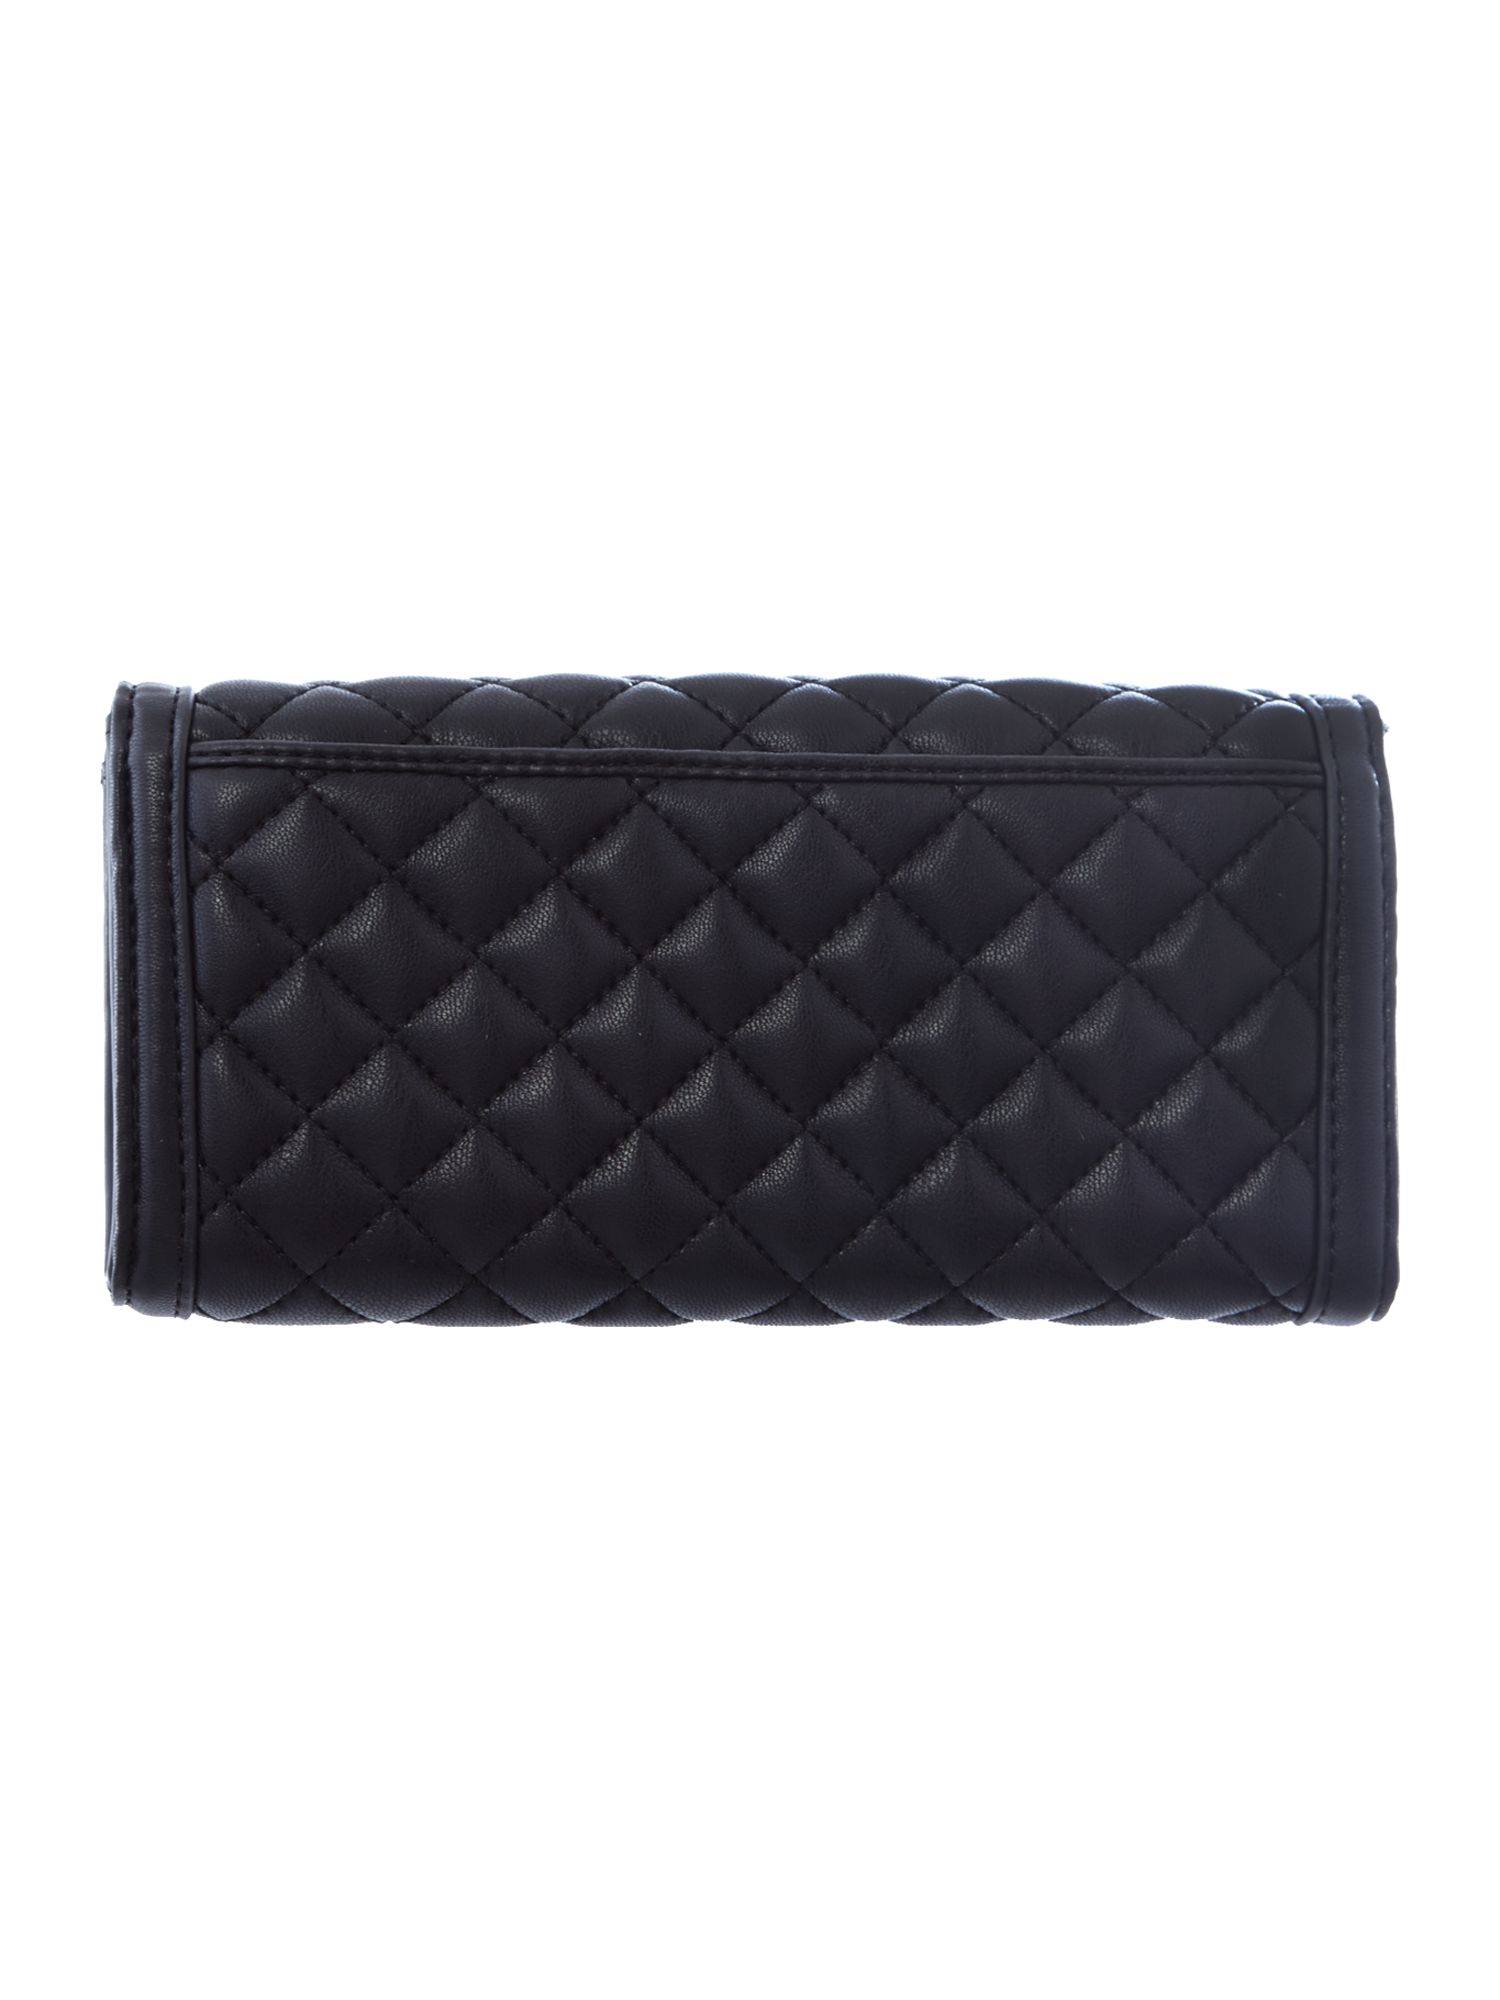 Black enamel plaque flapover purse